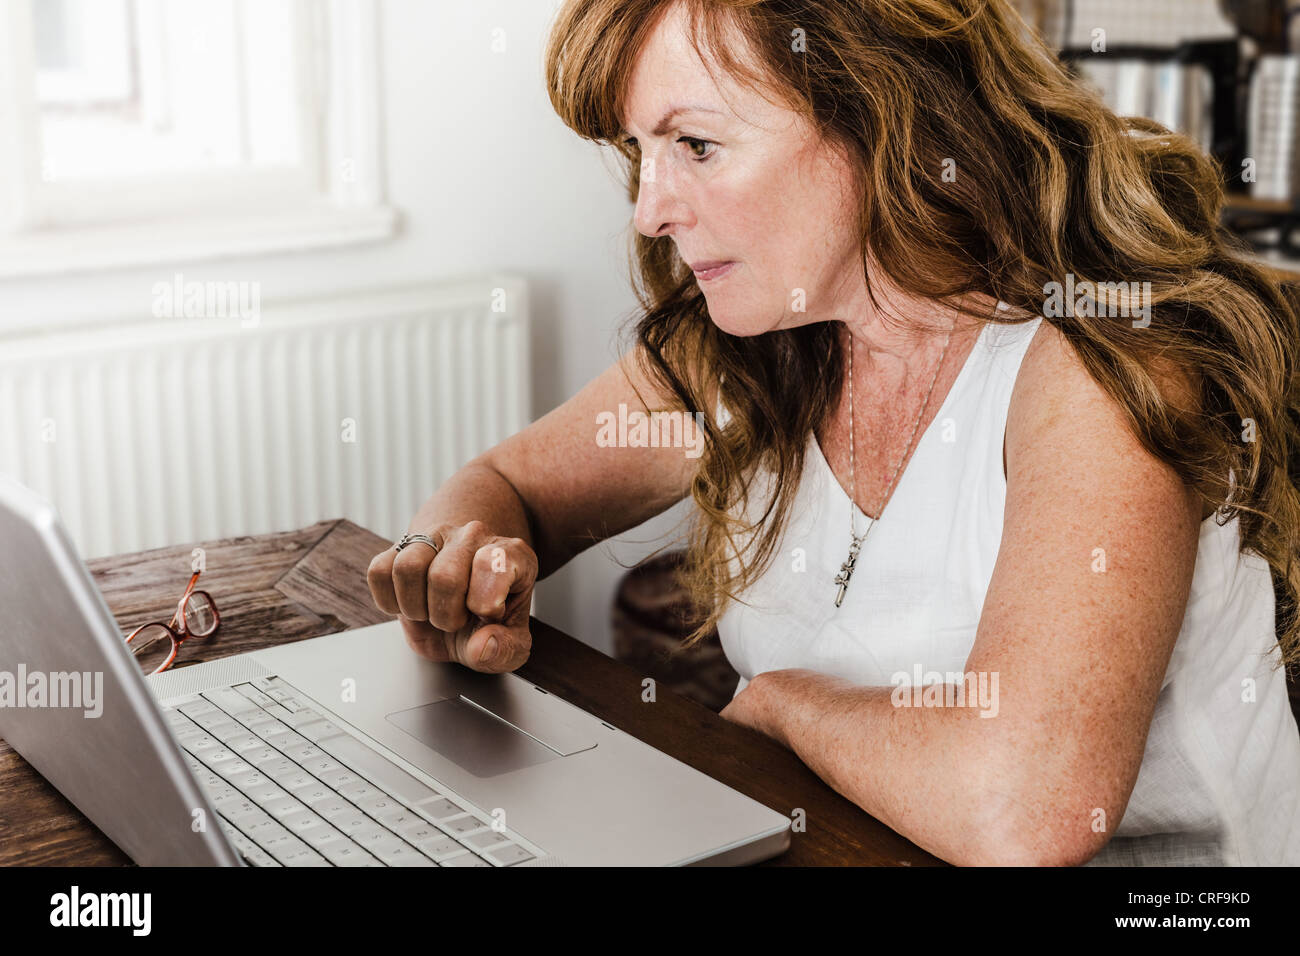 Older woman using laptop in kitchen Photo Stock